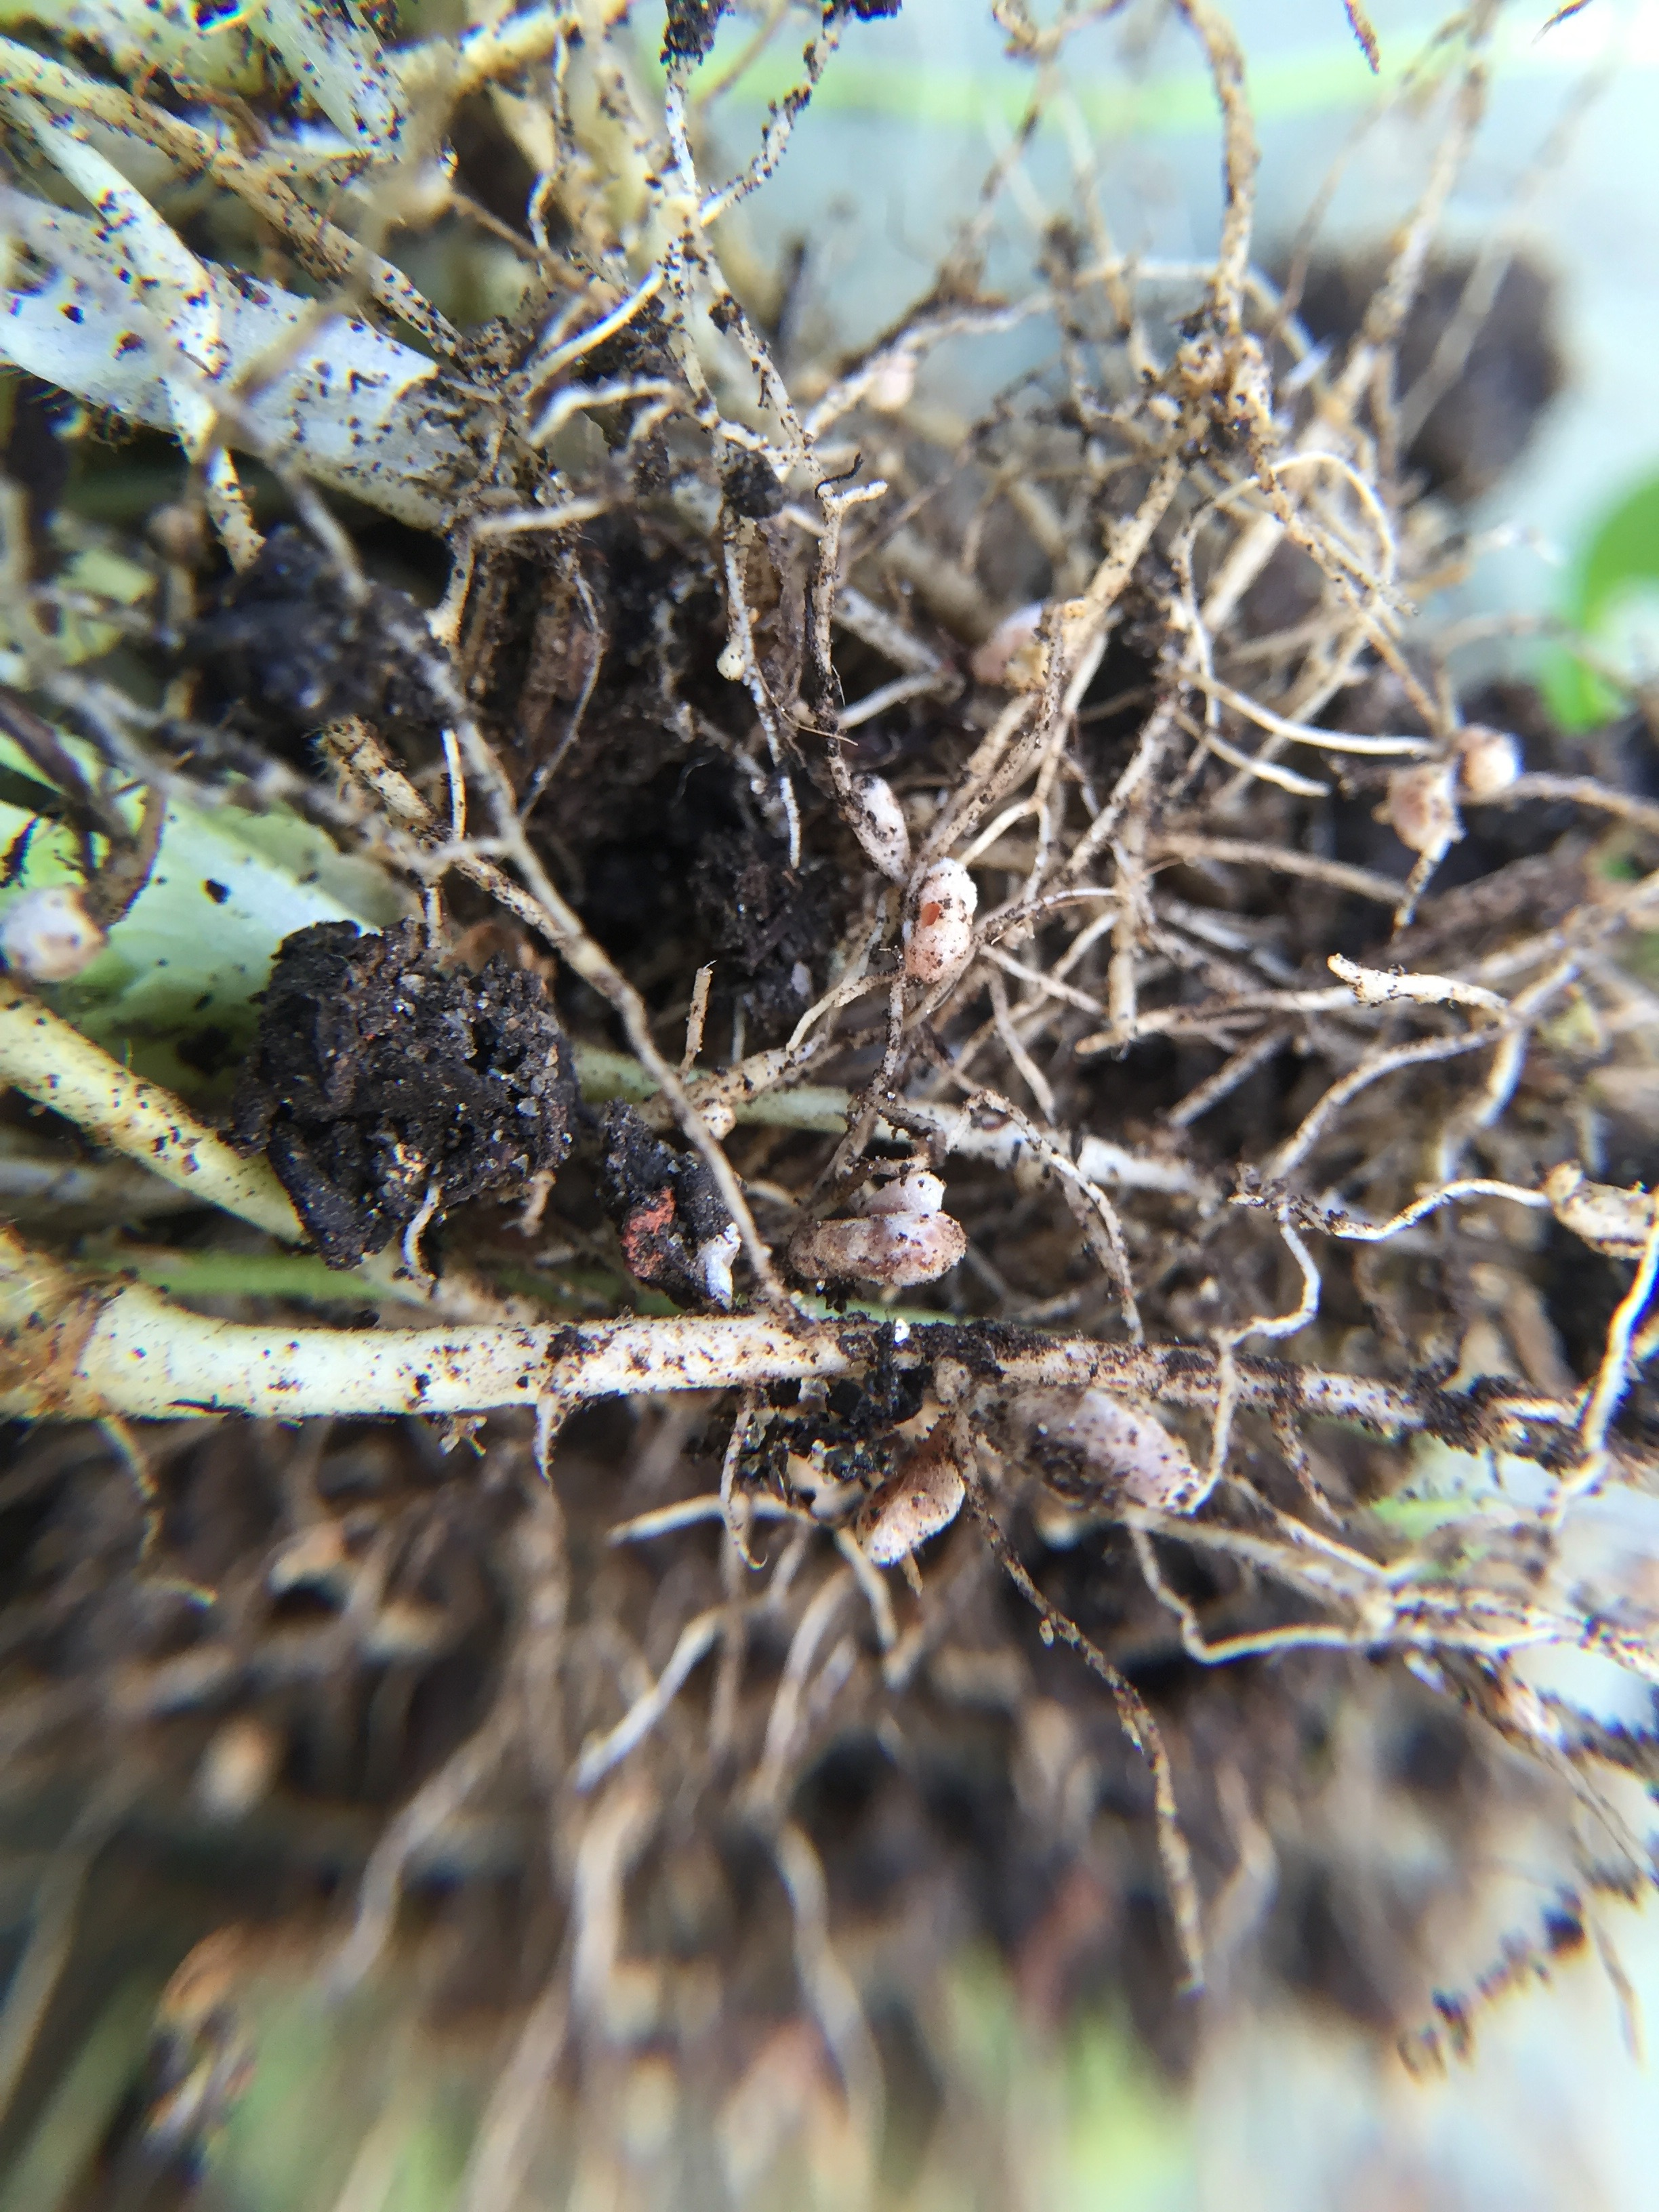 Nitrogen nodules on the roots of the clover